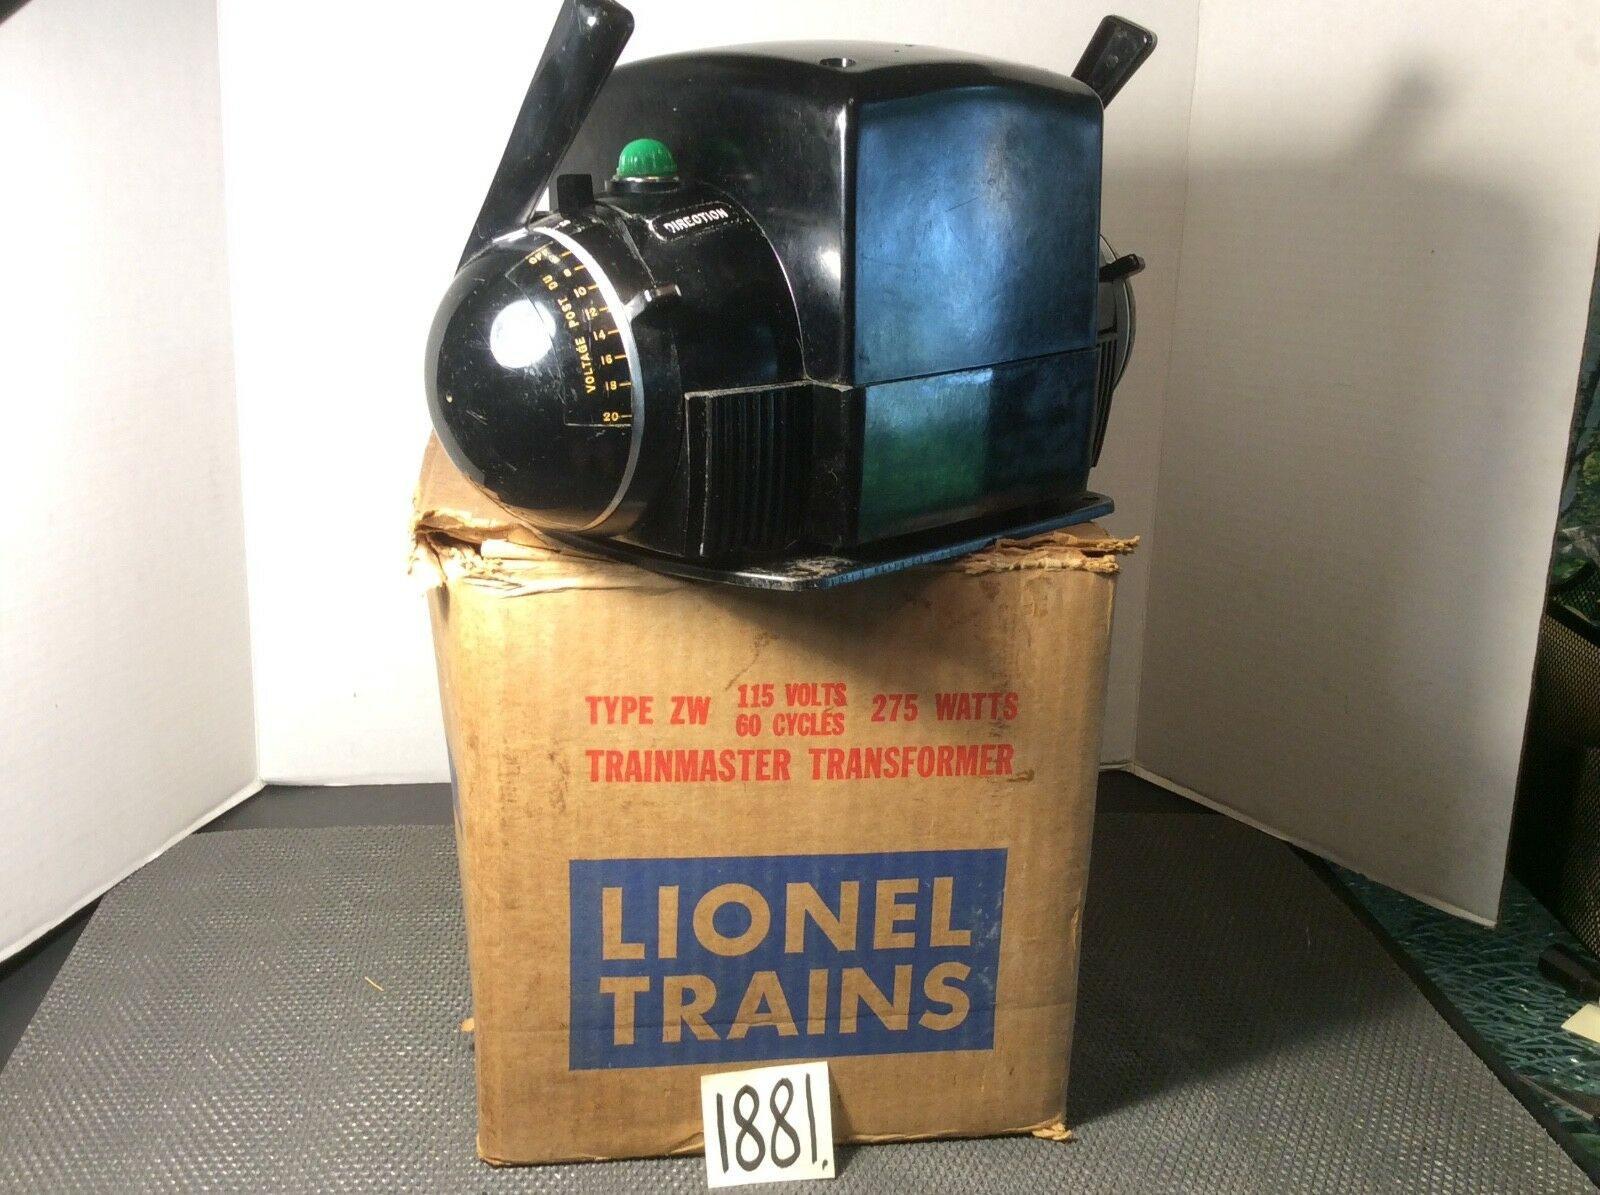 VINTAGE 1953 LIONEL TYPE ZW 115 Volts, 60 Cycles, 275Watt In OB.